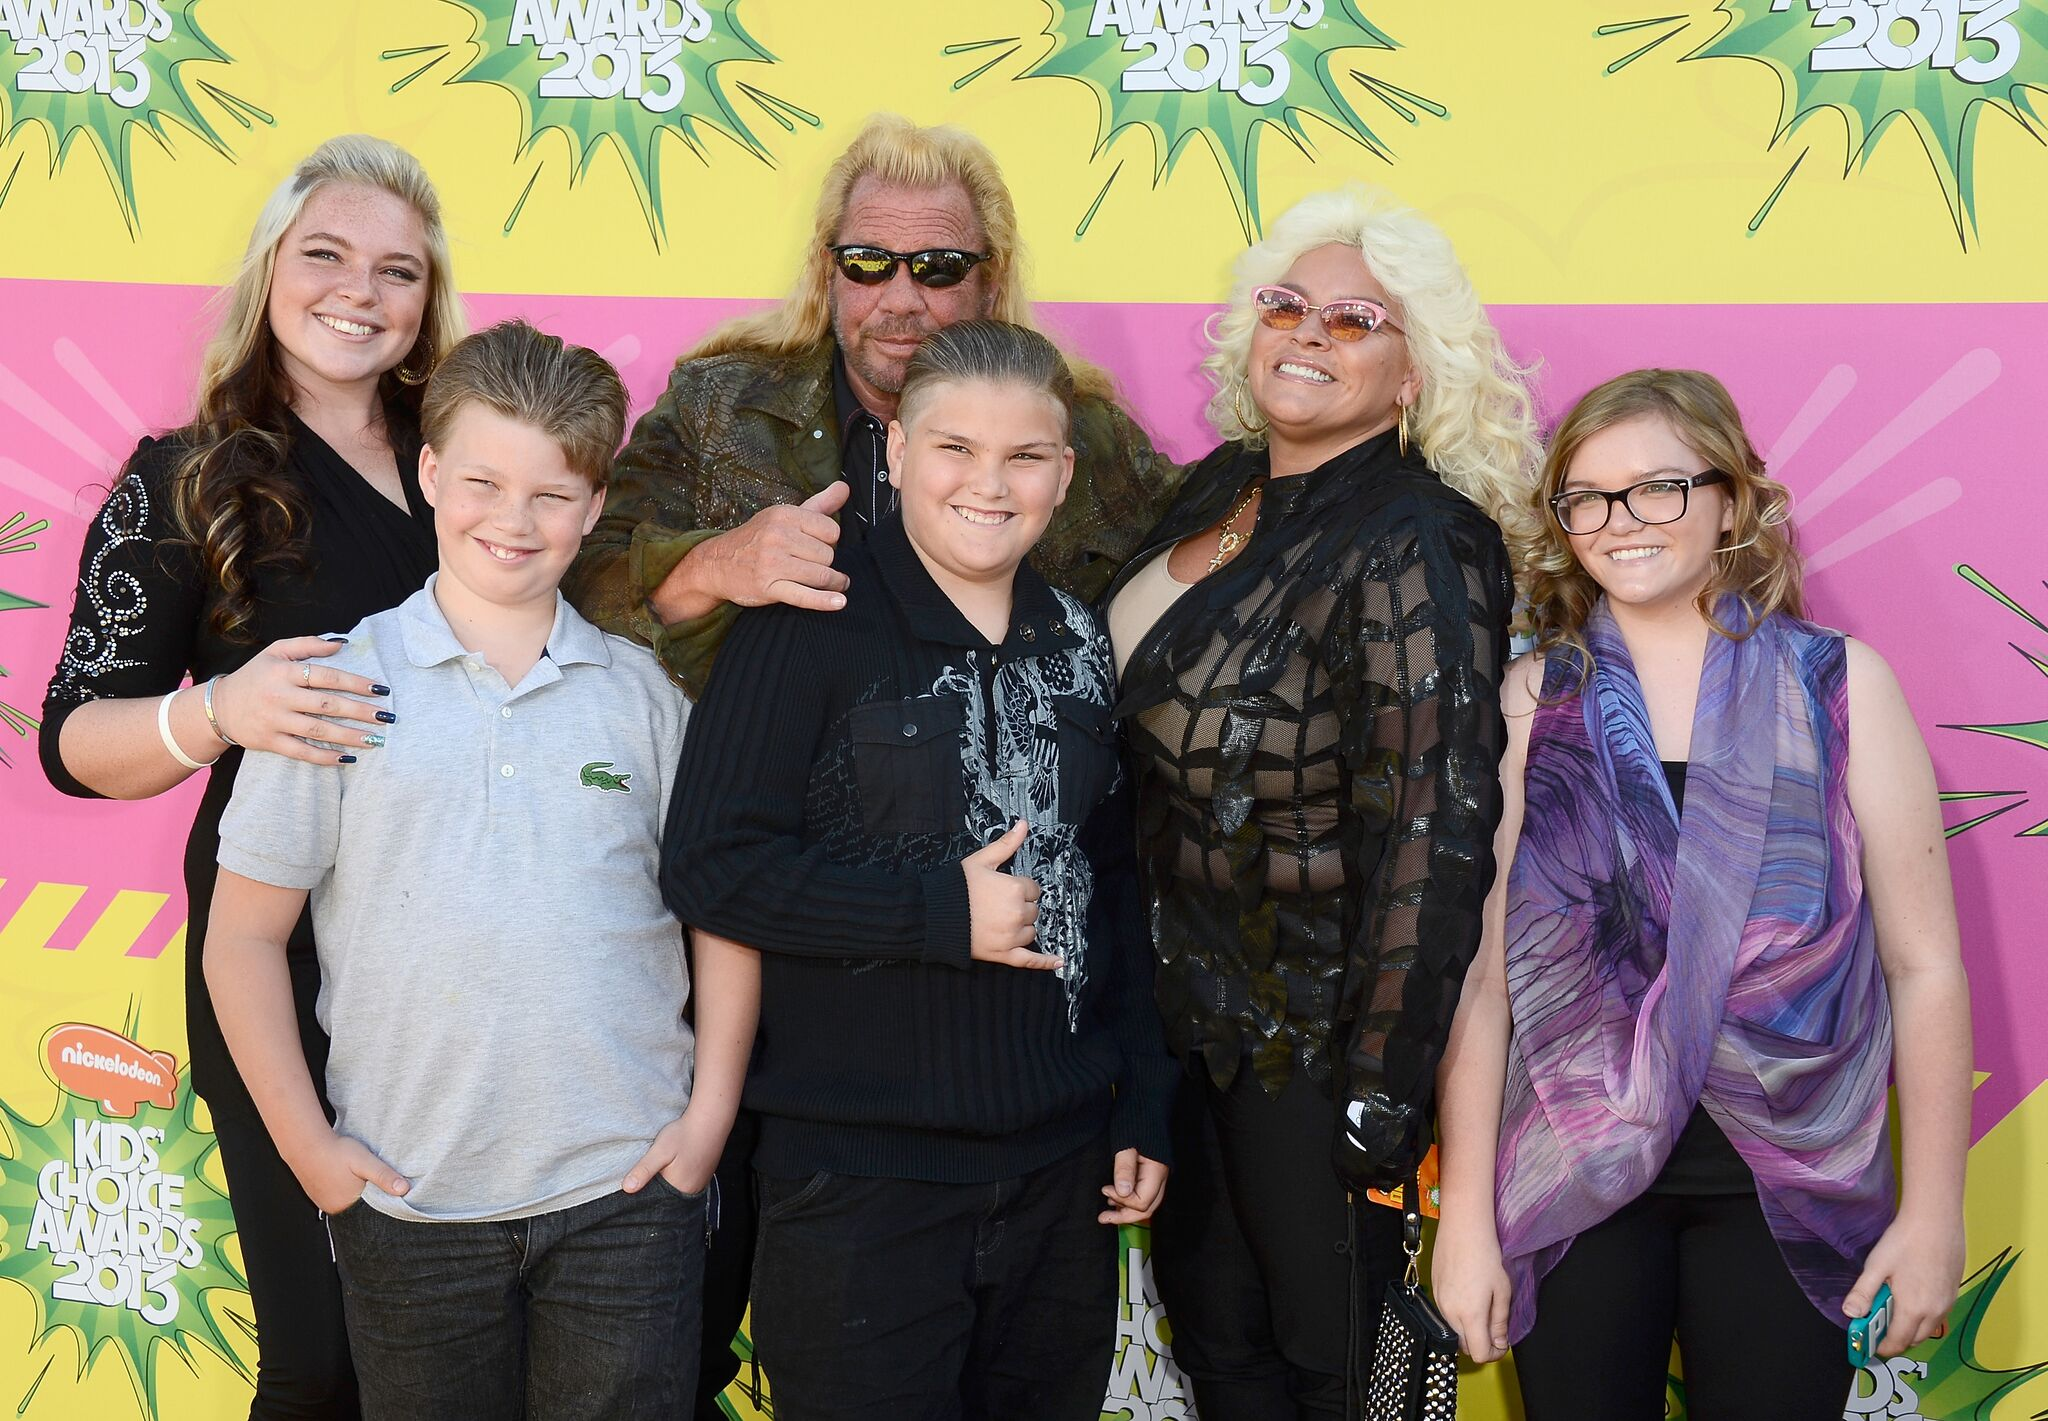 Duane 'Dog' Chapman (C) and family arrive at Nickelodeon's 26th Annual Kids' Choice Awards  | Getty Images